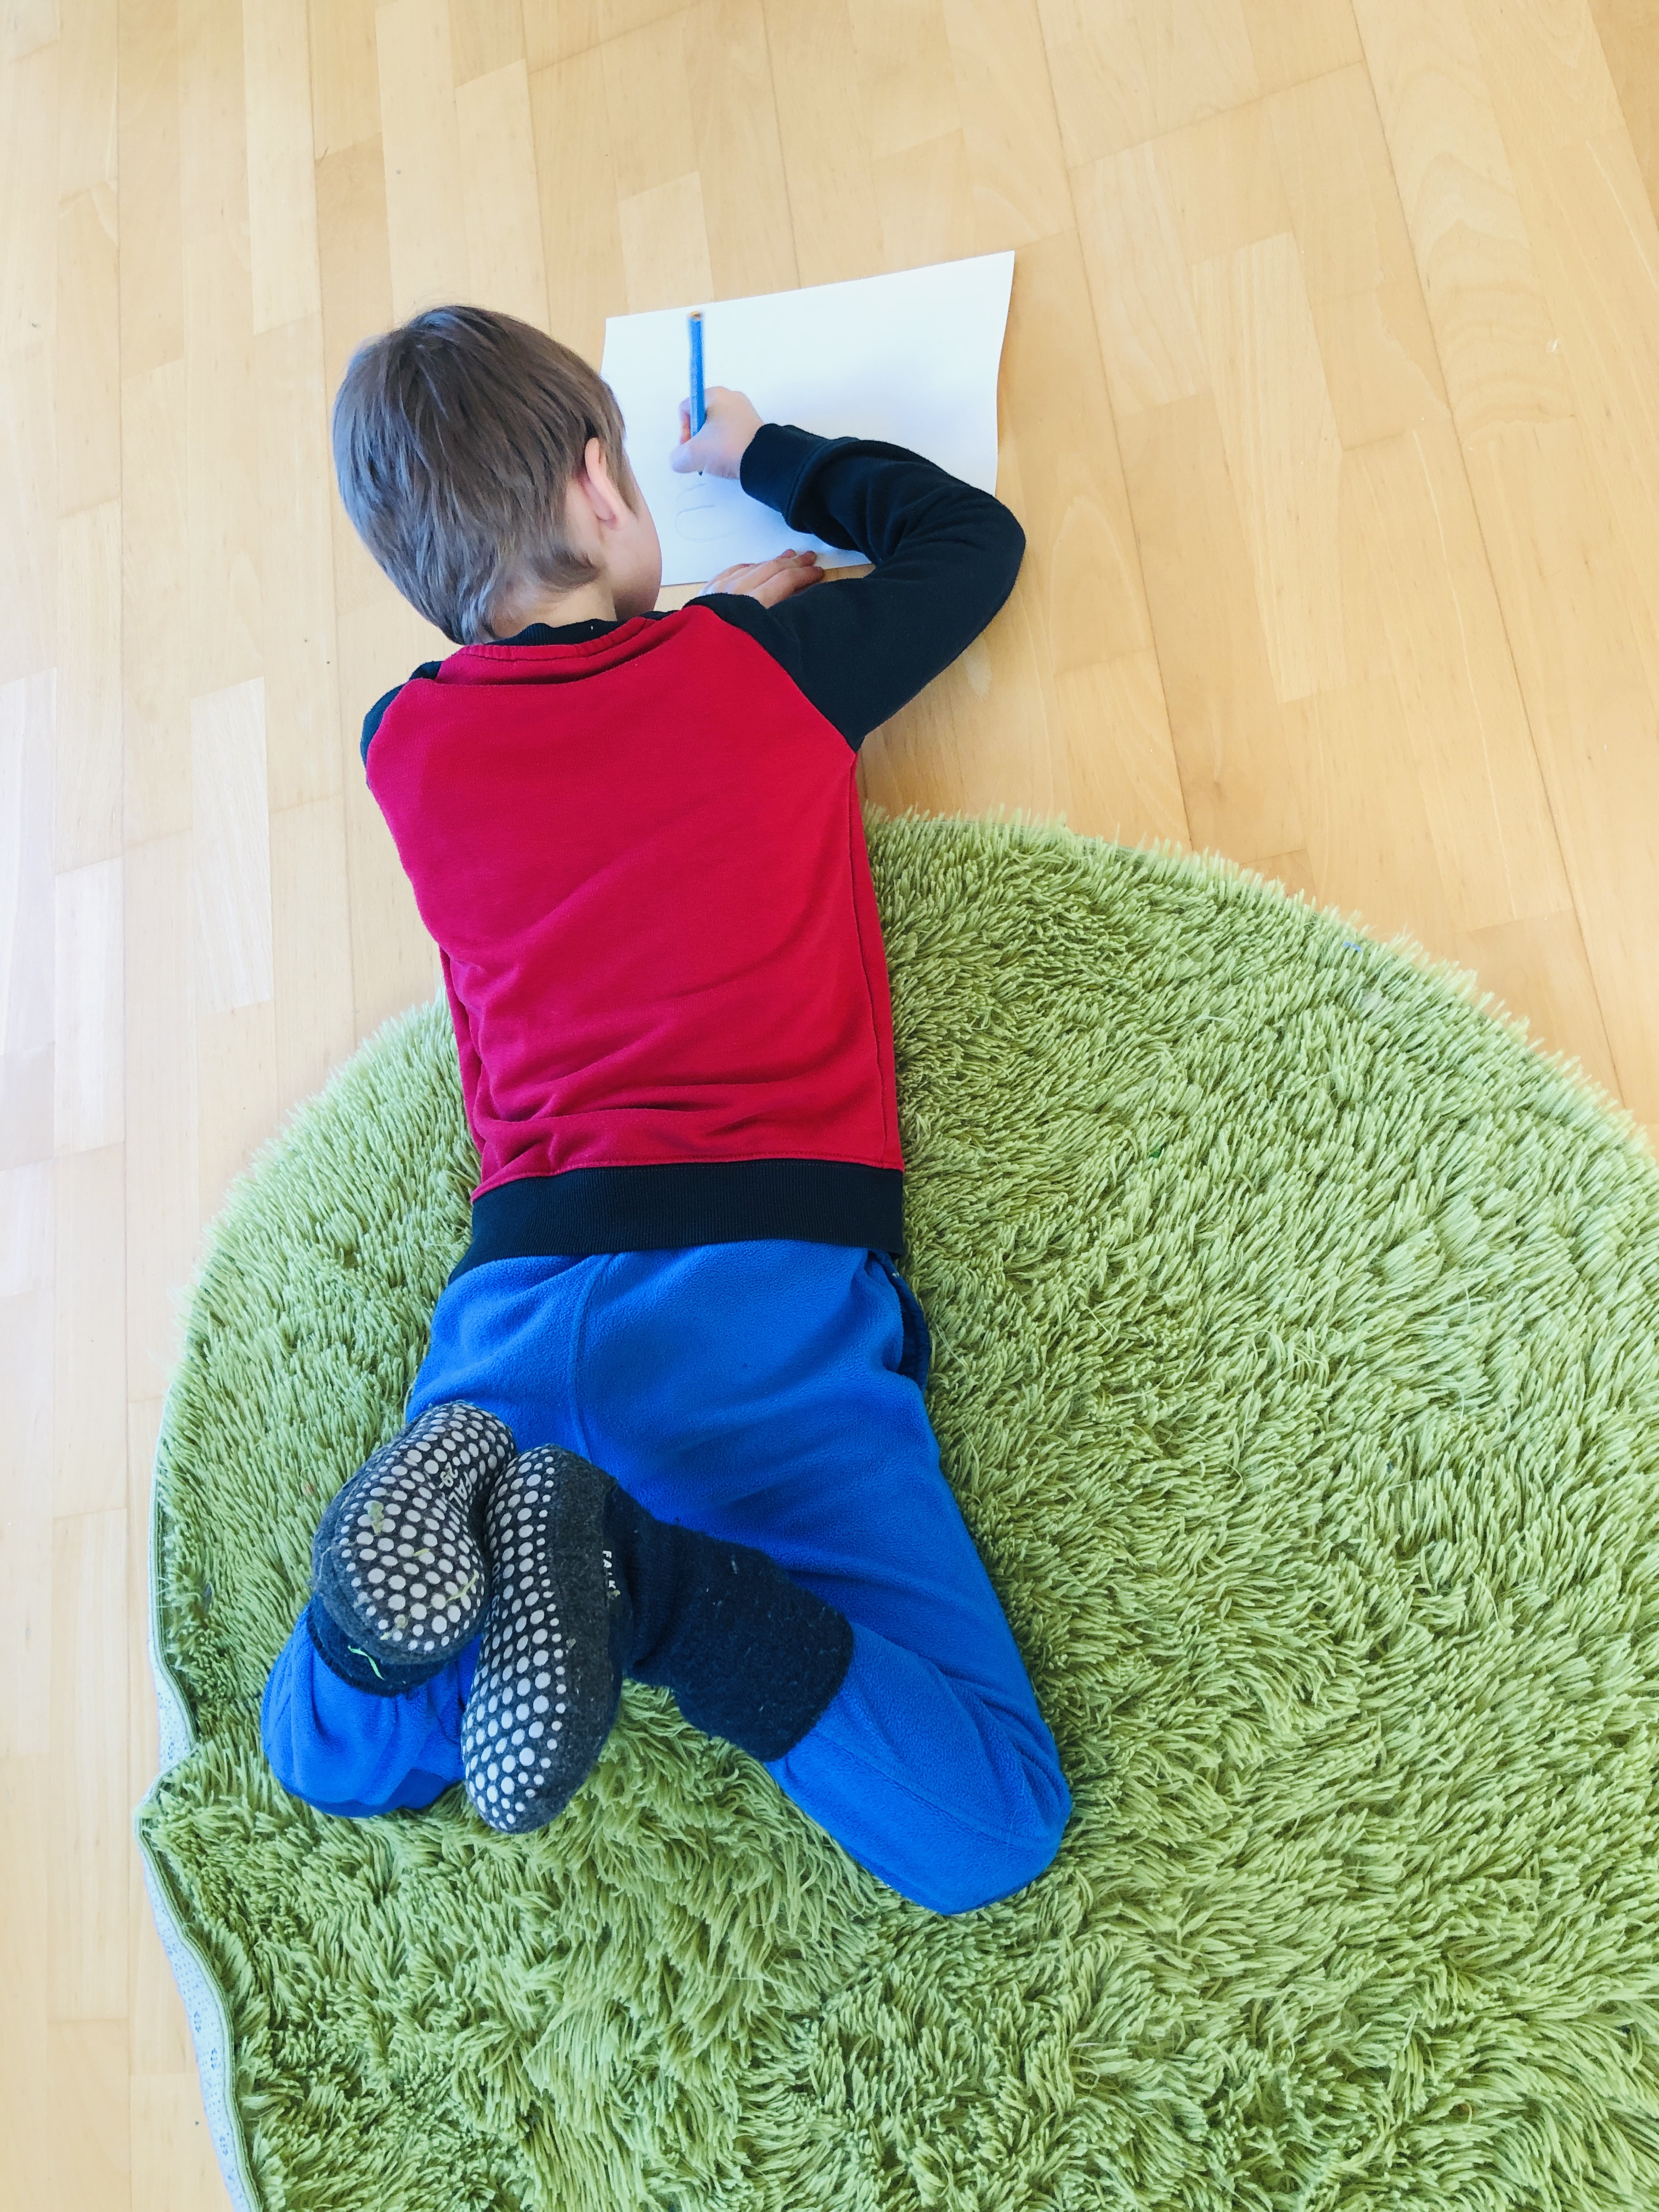 learning on the floor